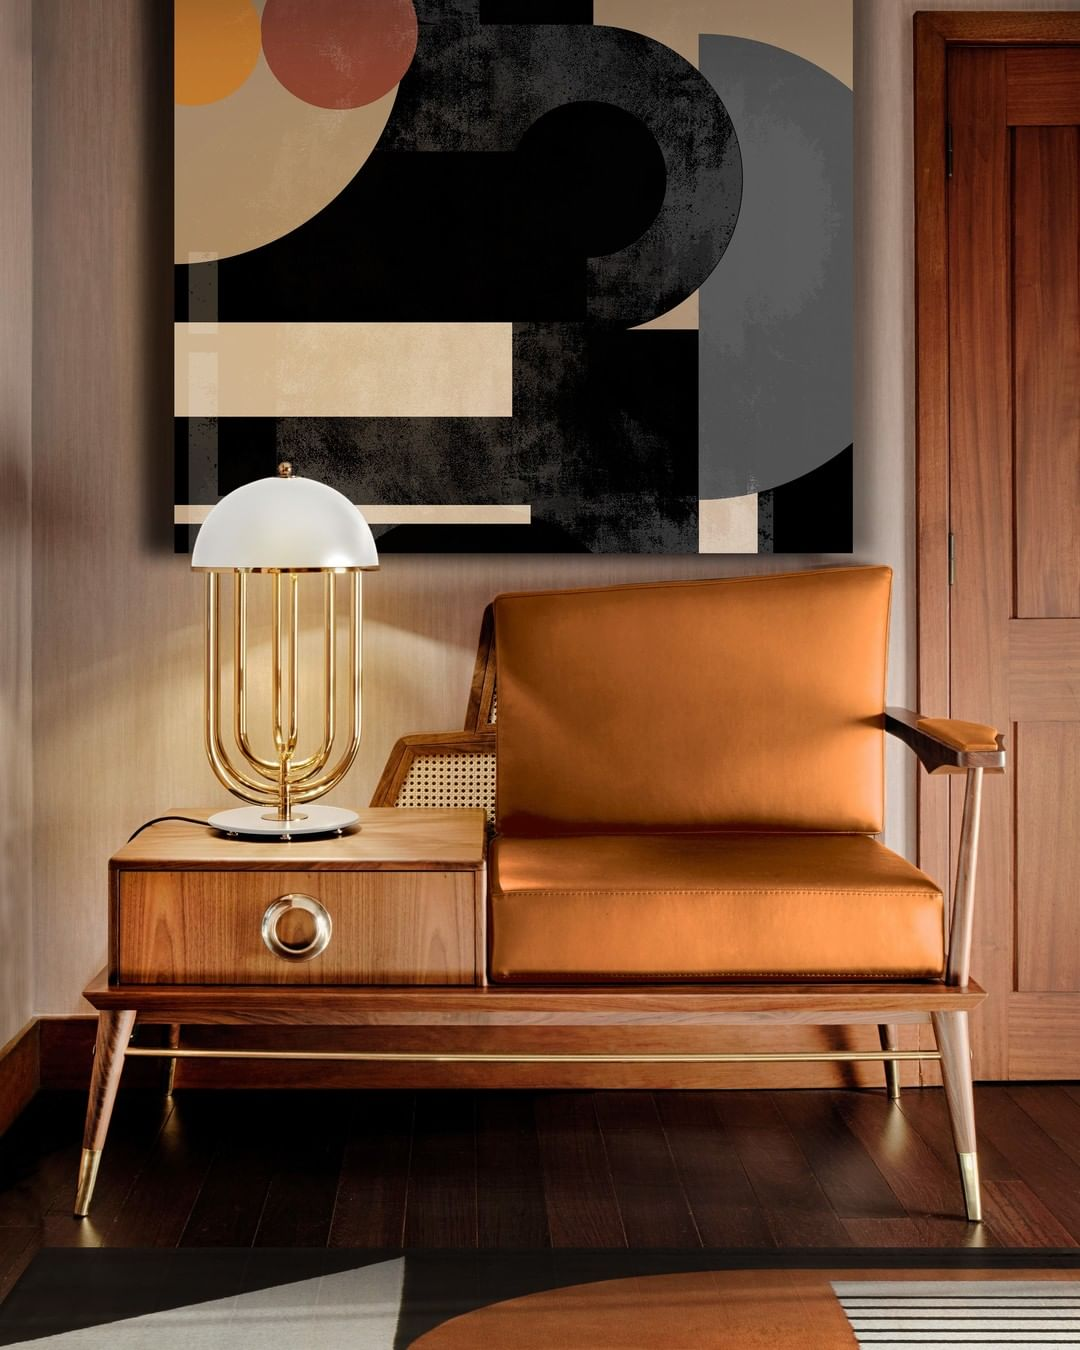 AN AMAZING TABLE LAMP TO ELEVATE YOUR ENTRYWAY